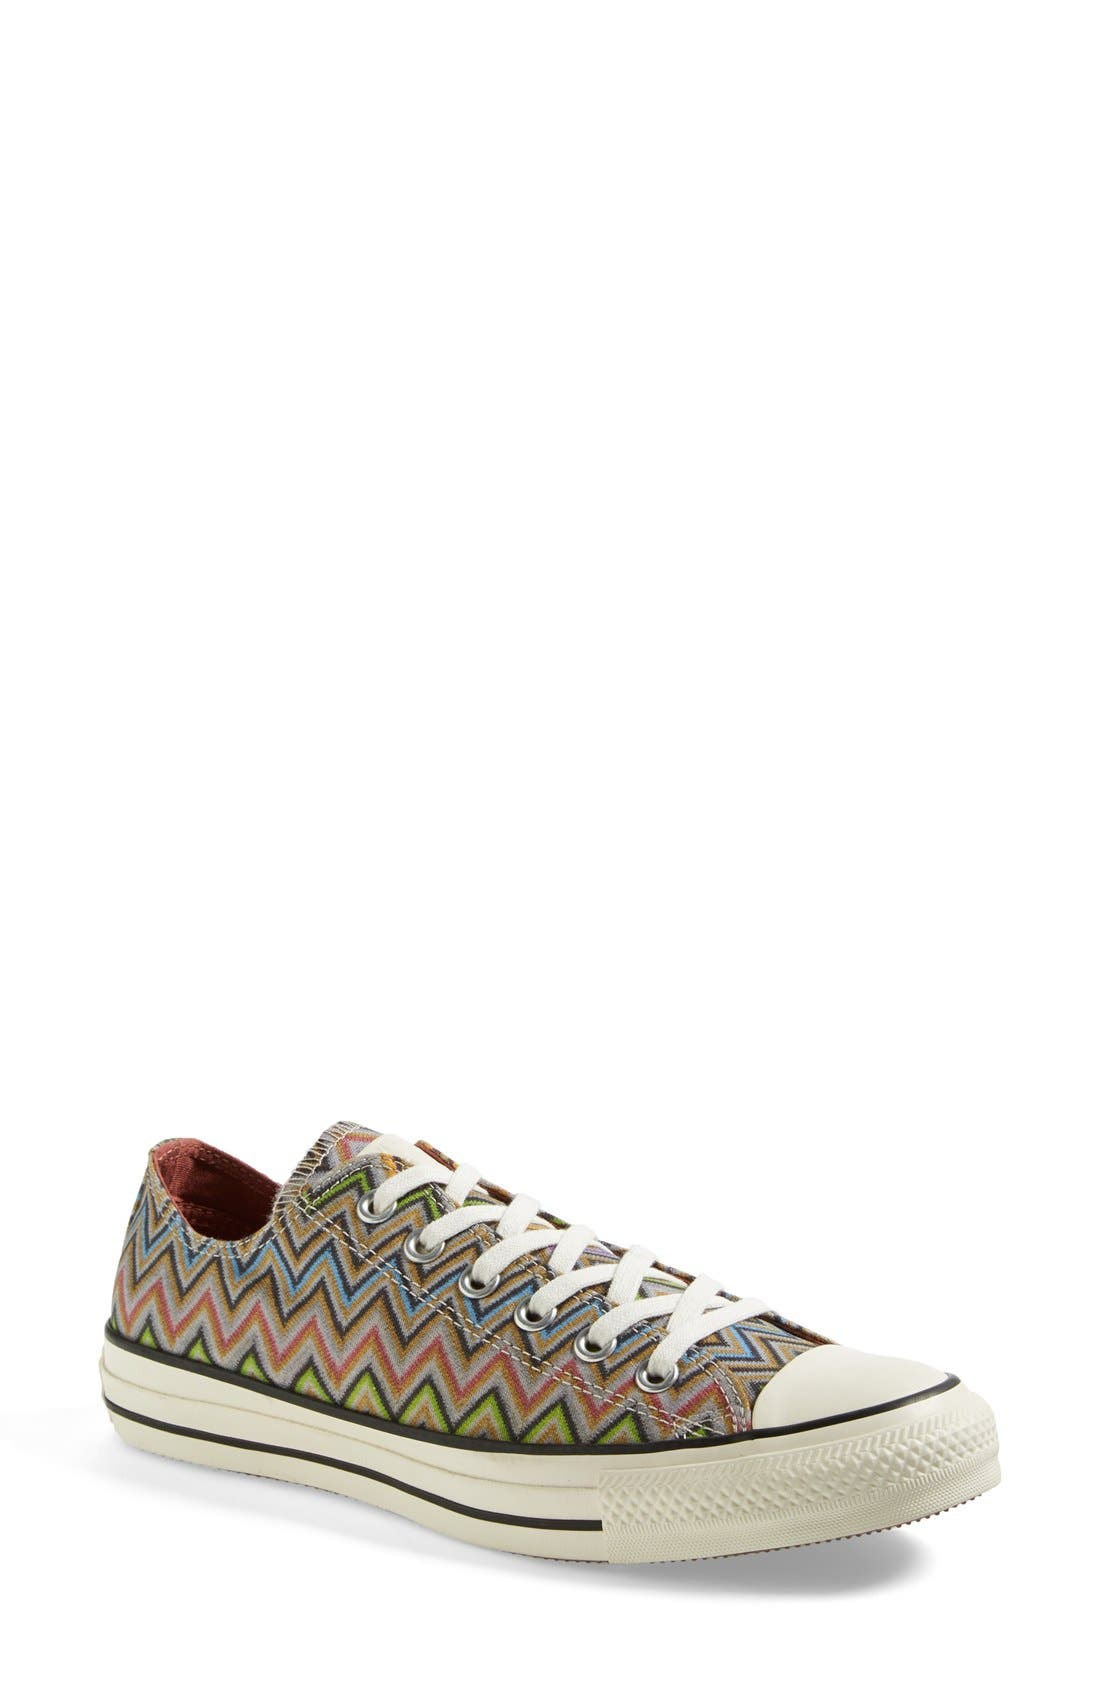 x Missoni Chuck Taylor<sup>®</sup> All Star<sup>®</sup> Low Sneaker,                             Main thumbnail 1, color,                             Lucky Stone/ Egret